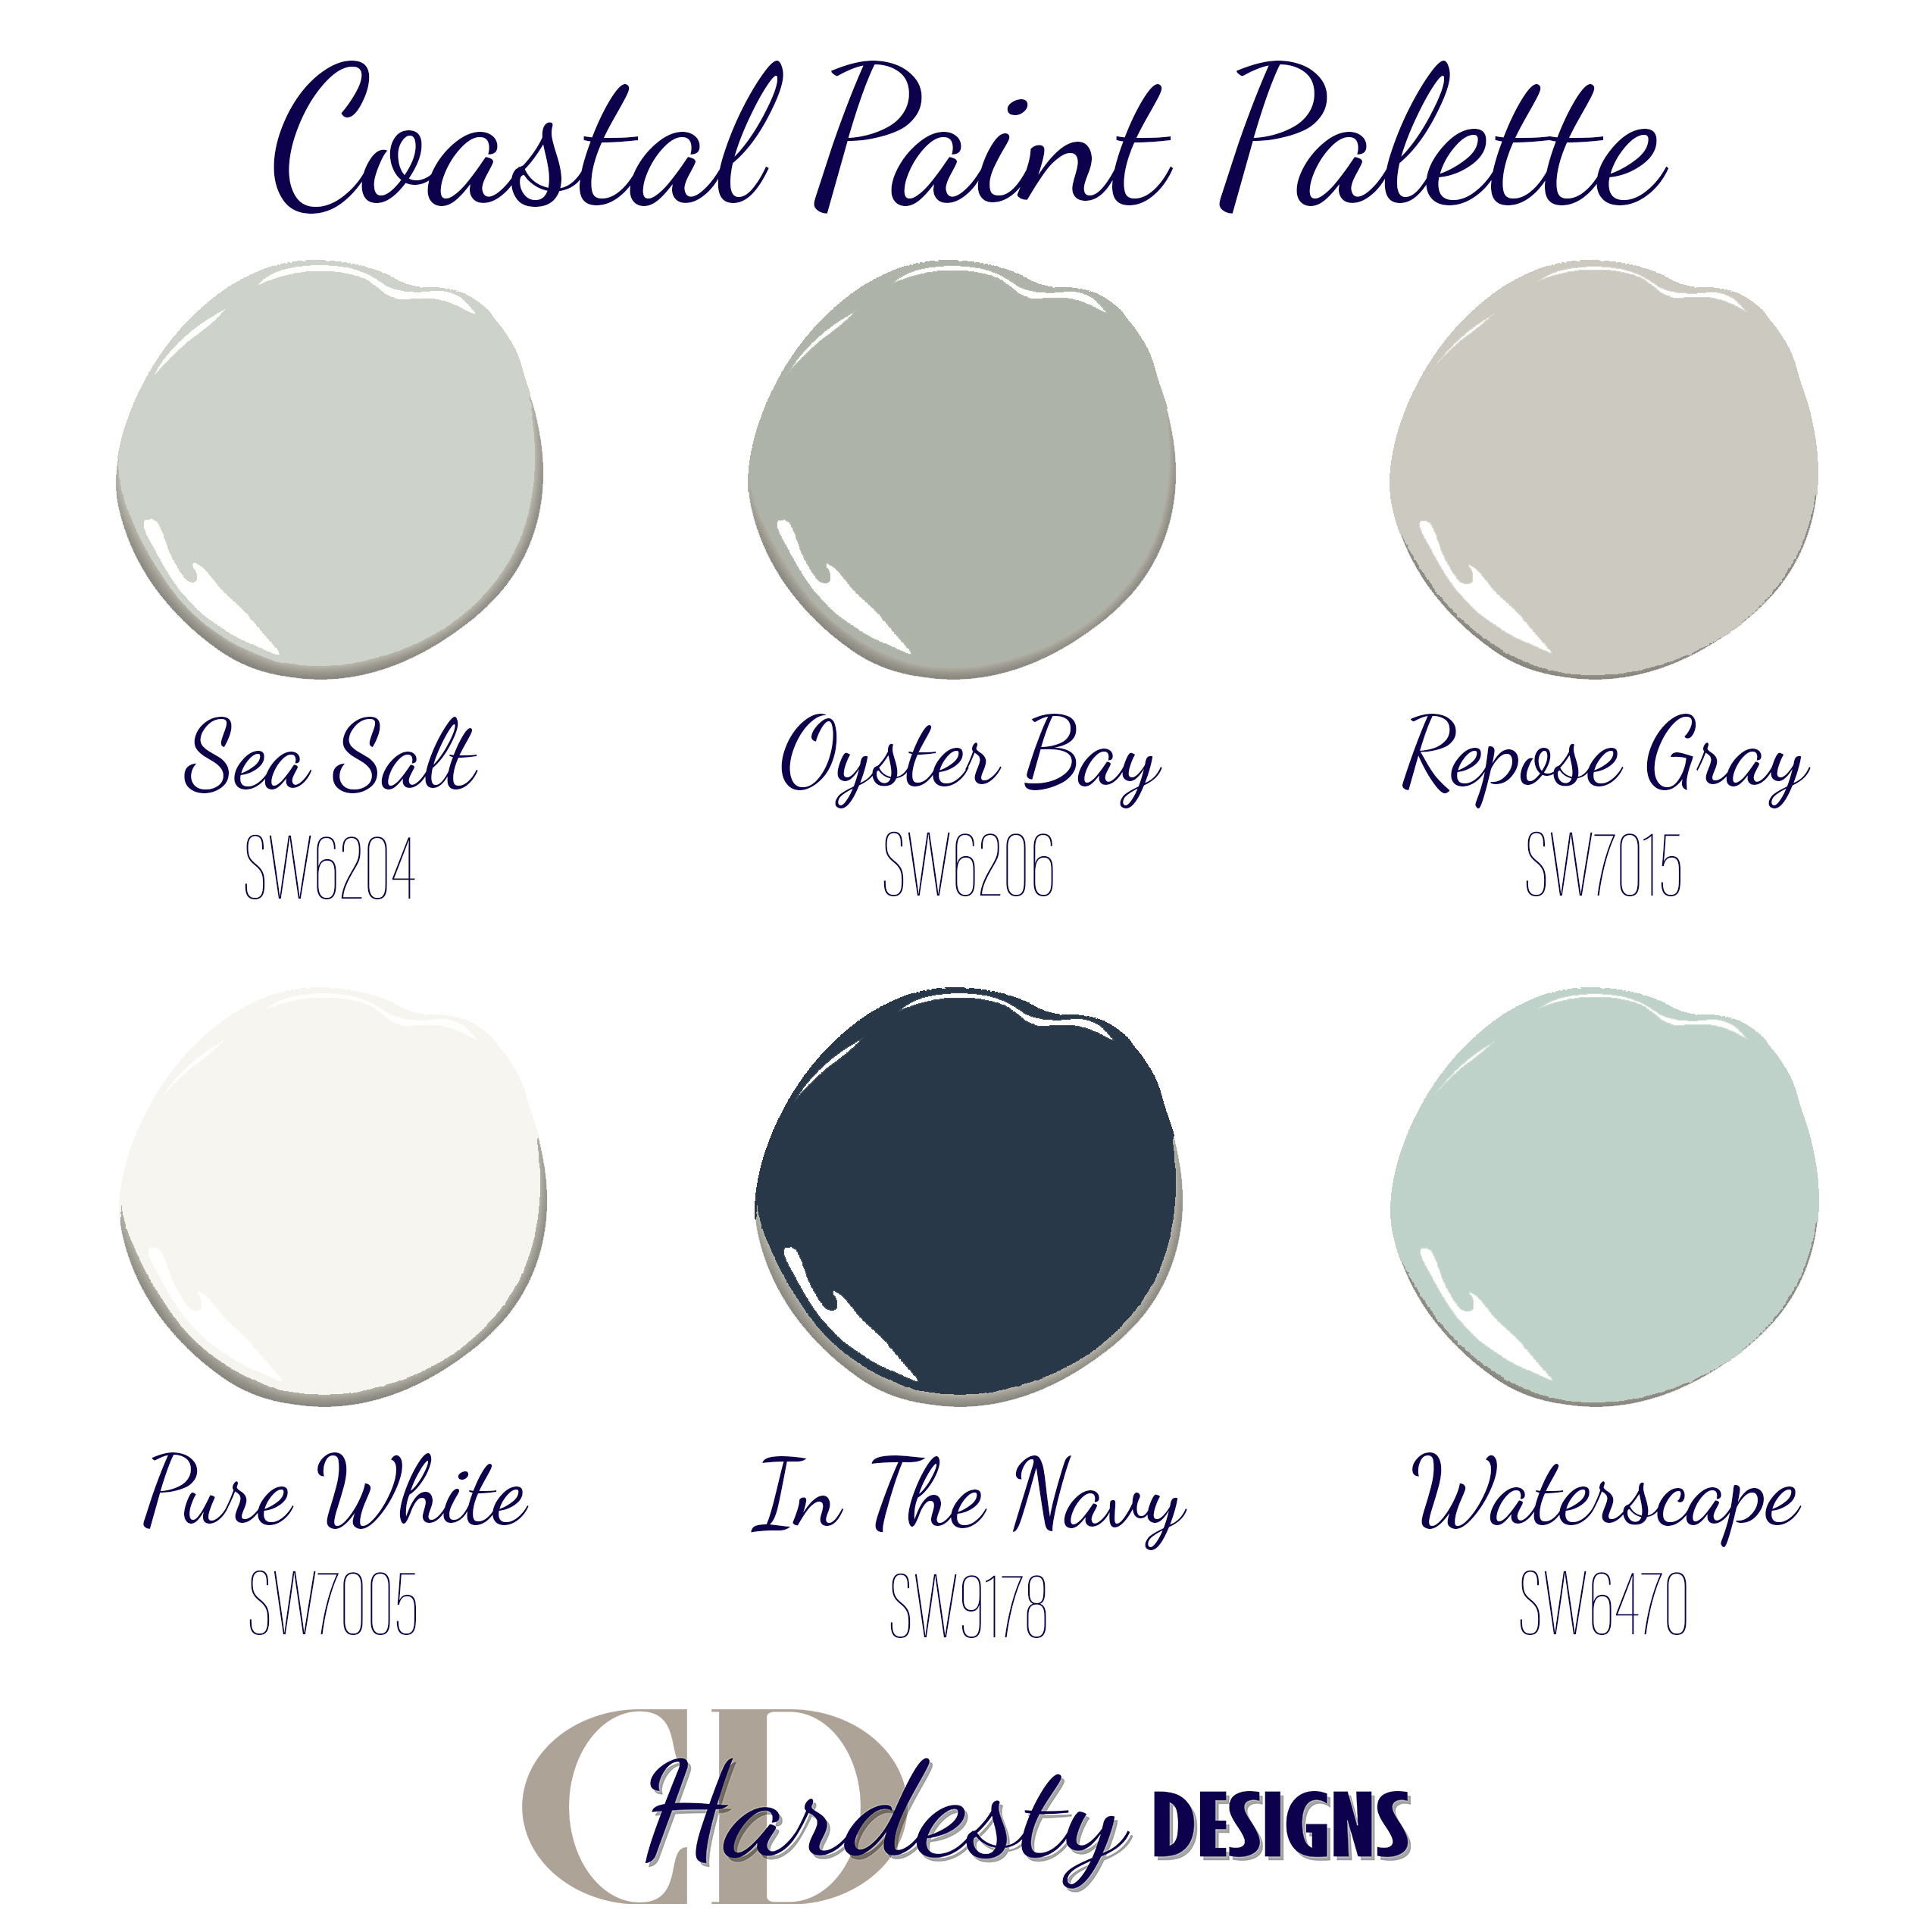 Color consultation color palette in a coastal farmhouse style with neutral shades and blue accents.